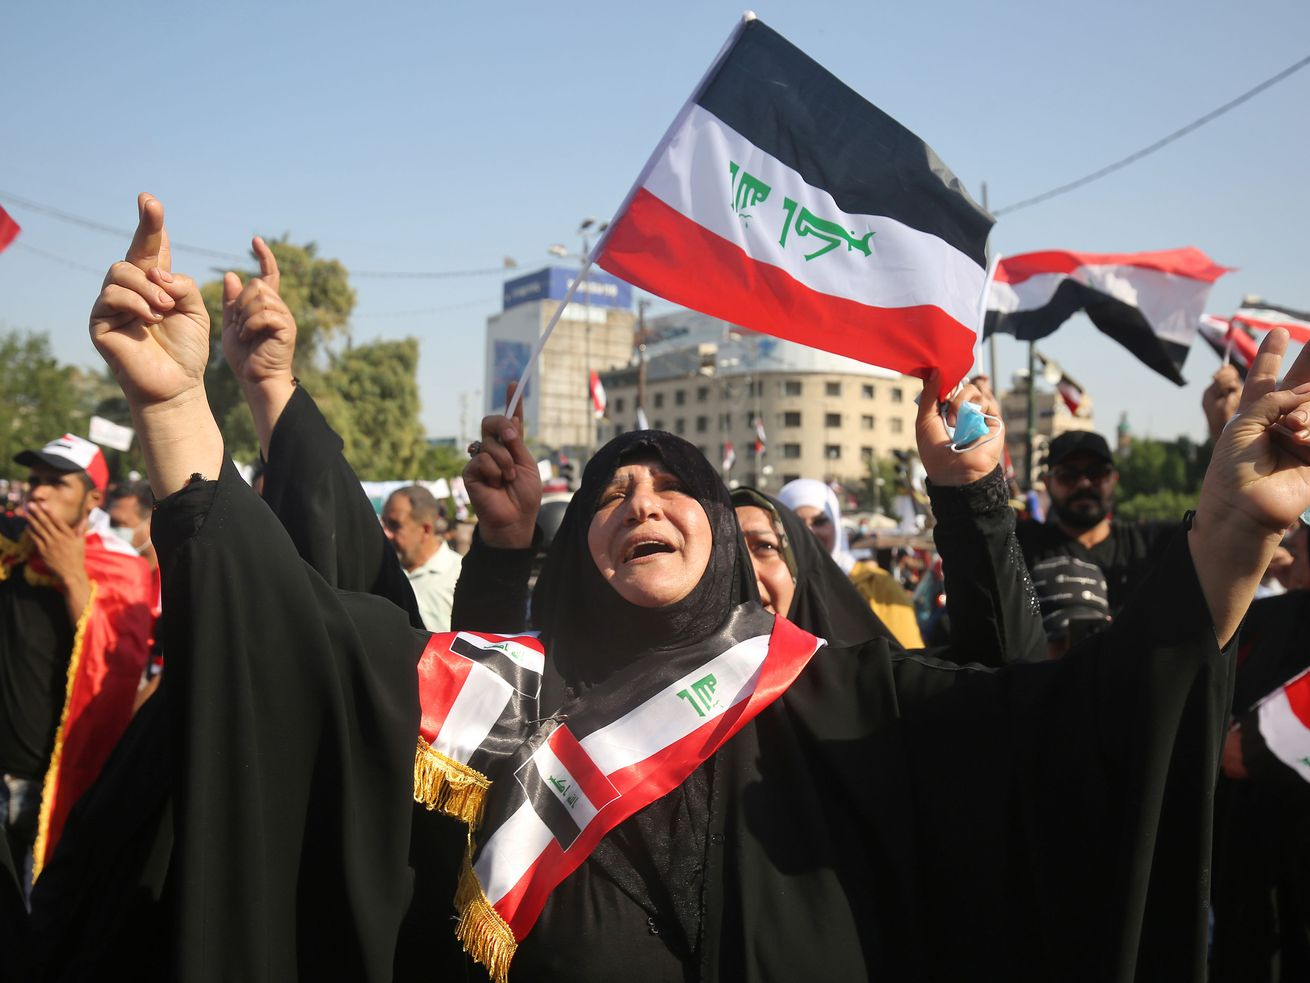 An Iraqi protester in a burqa raises their arms while others wave flags in Baghdad's Tahrir Square.